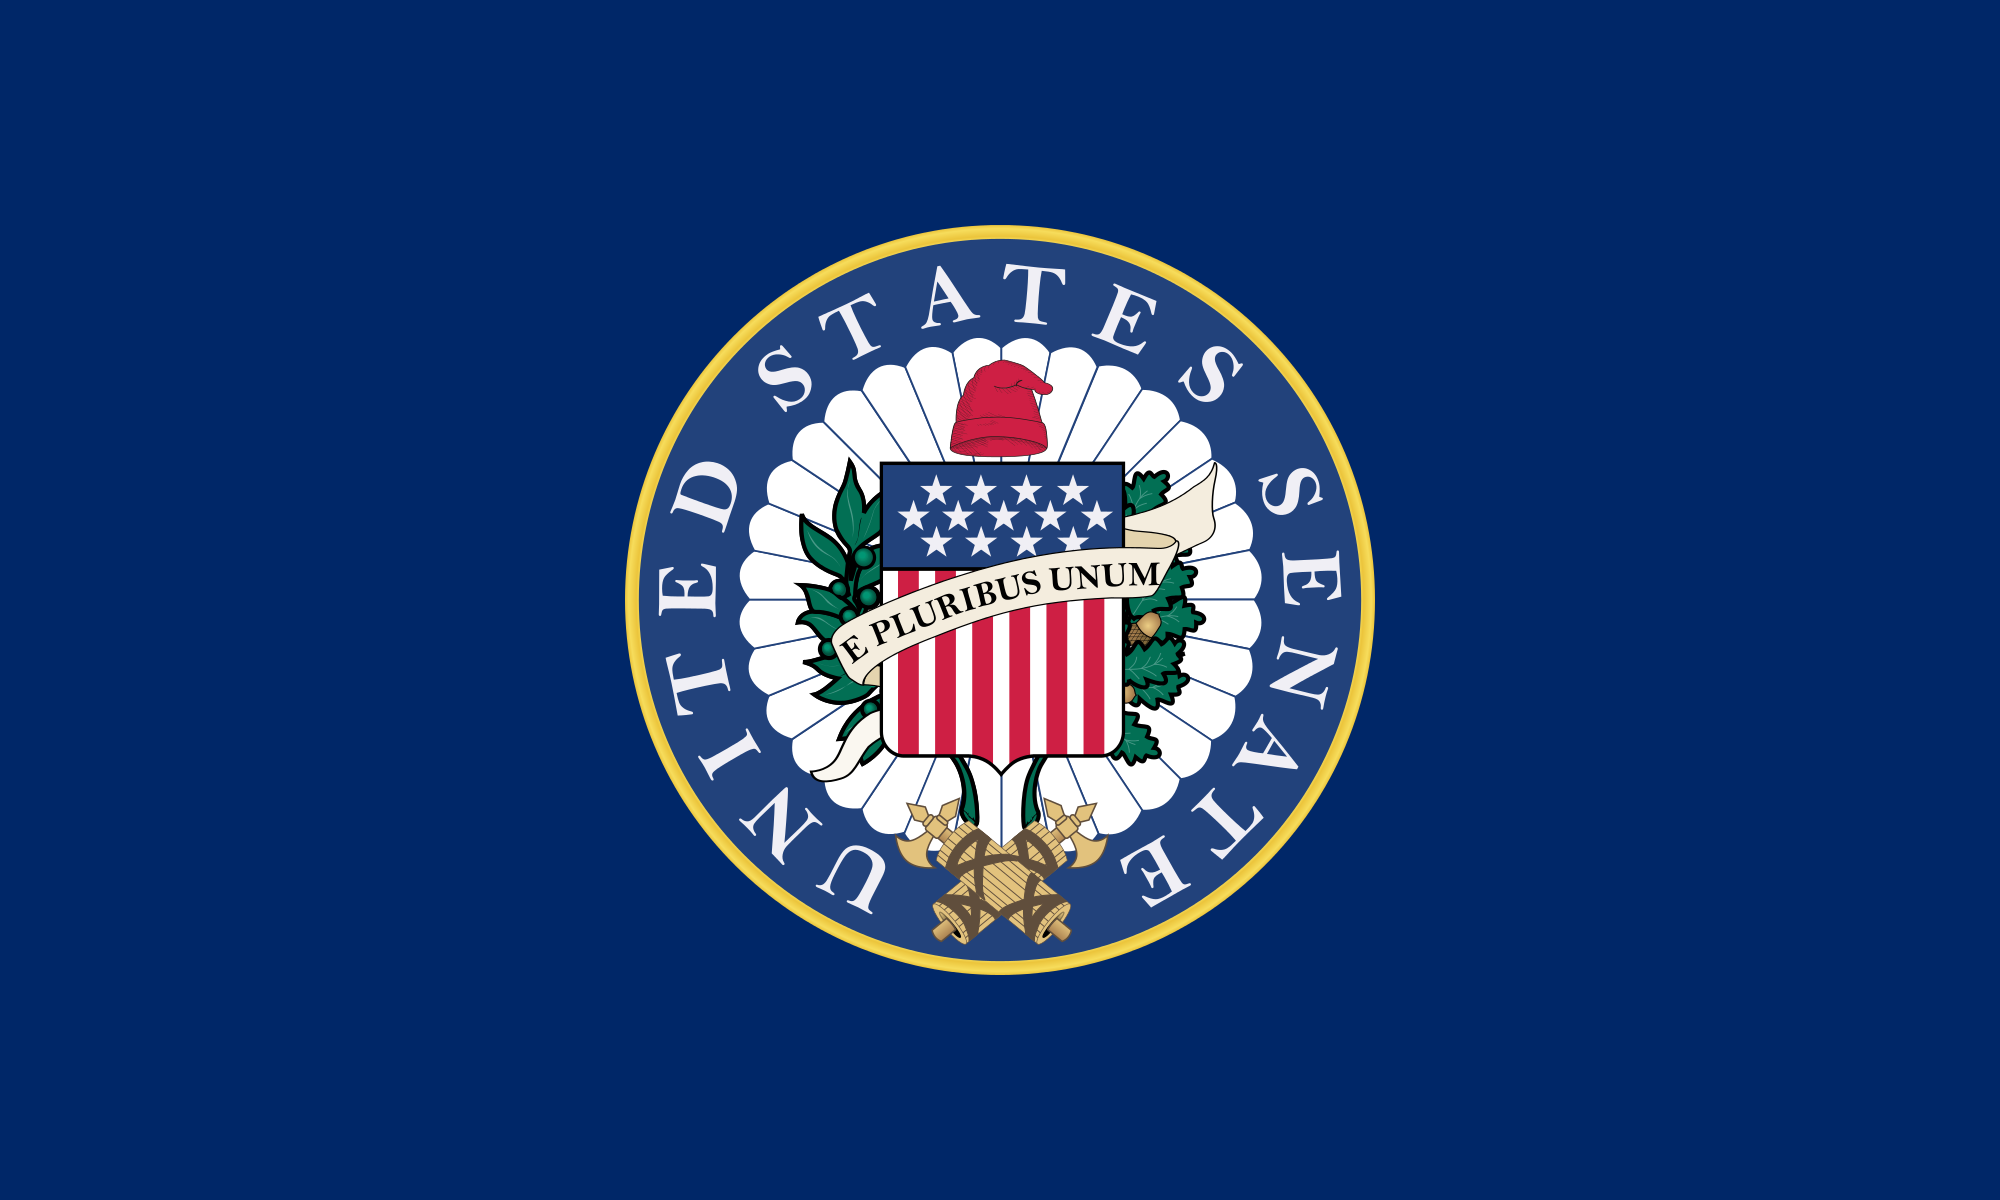 The official flag of the United States Senate.